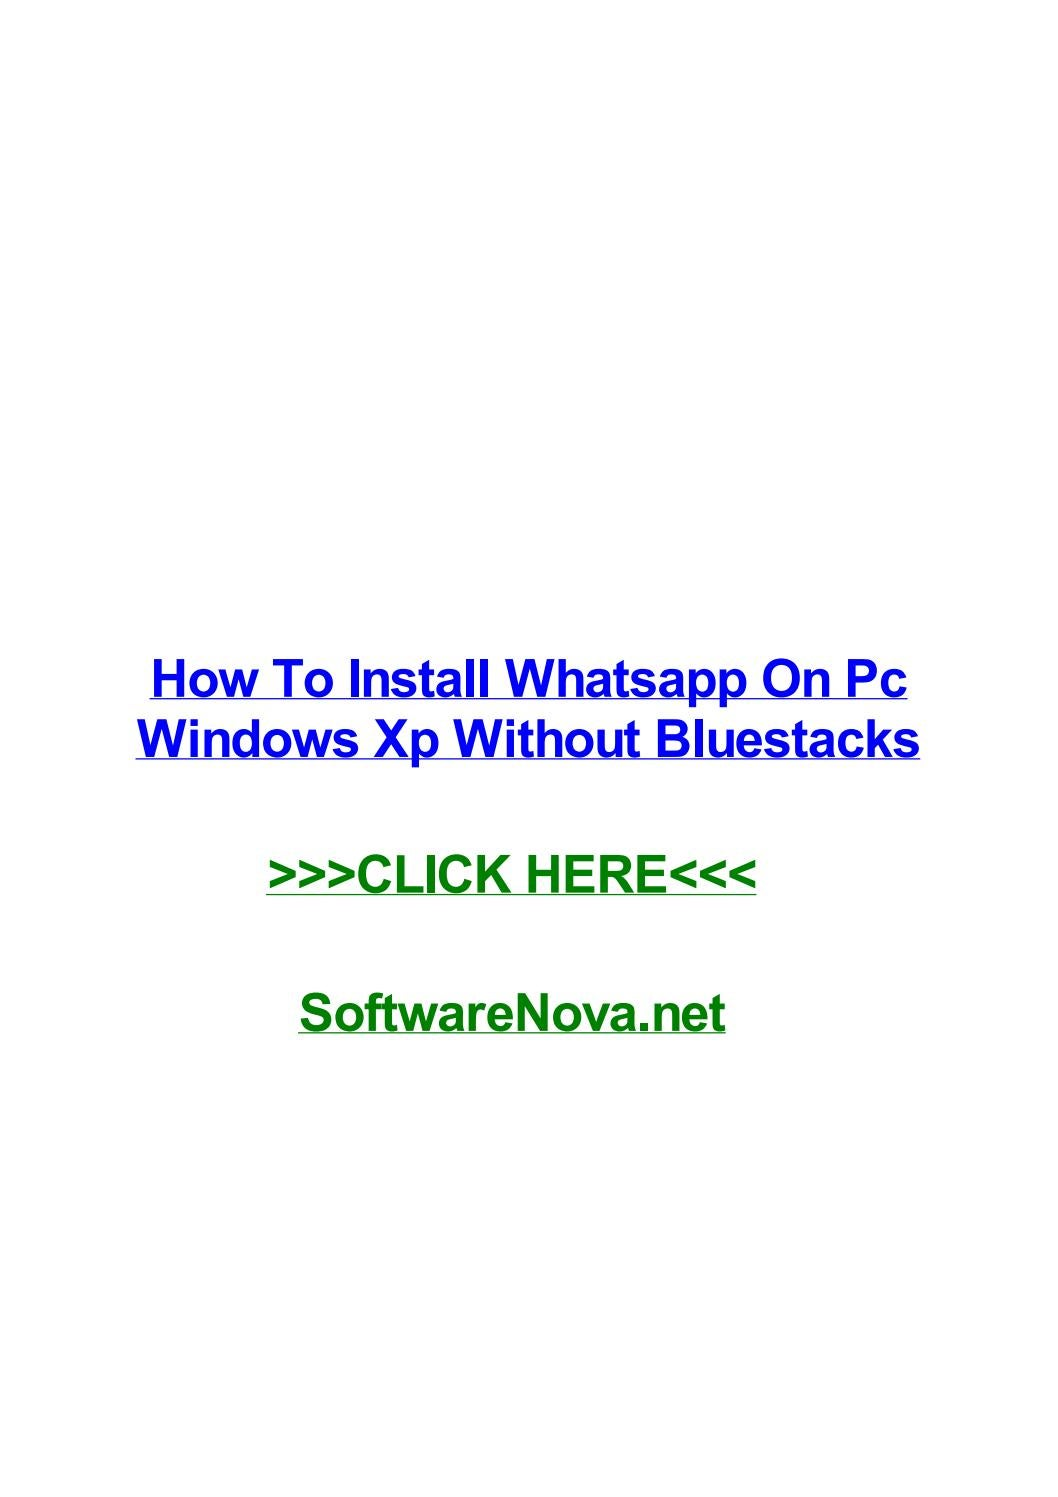 How to install whatsapp on pc windows xp without bluestacks